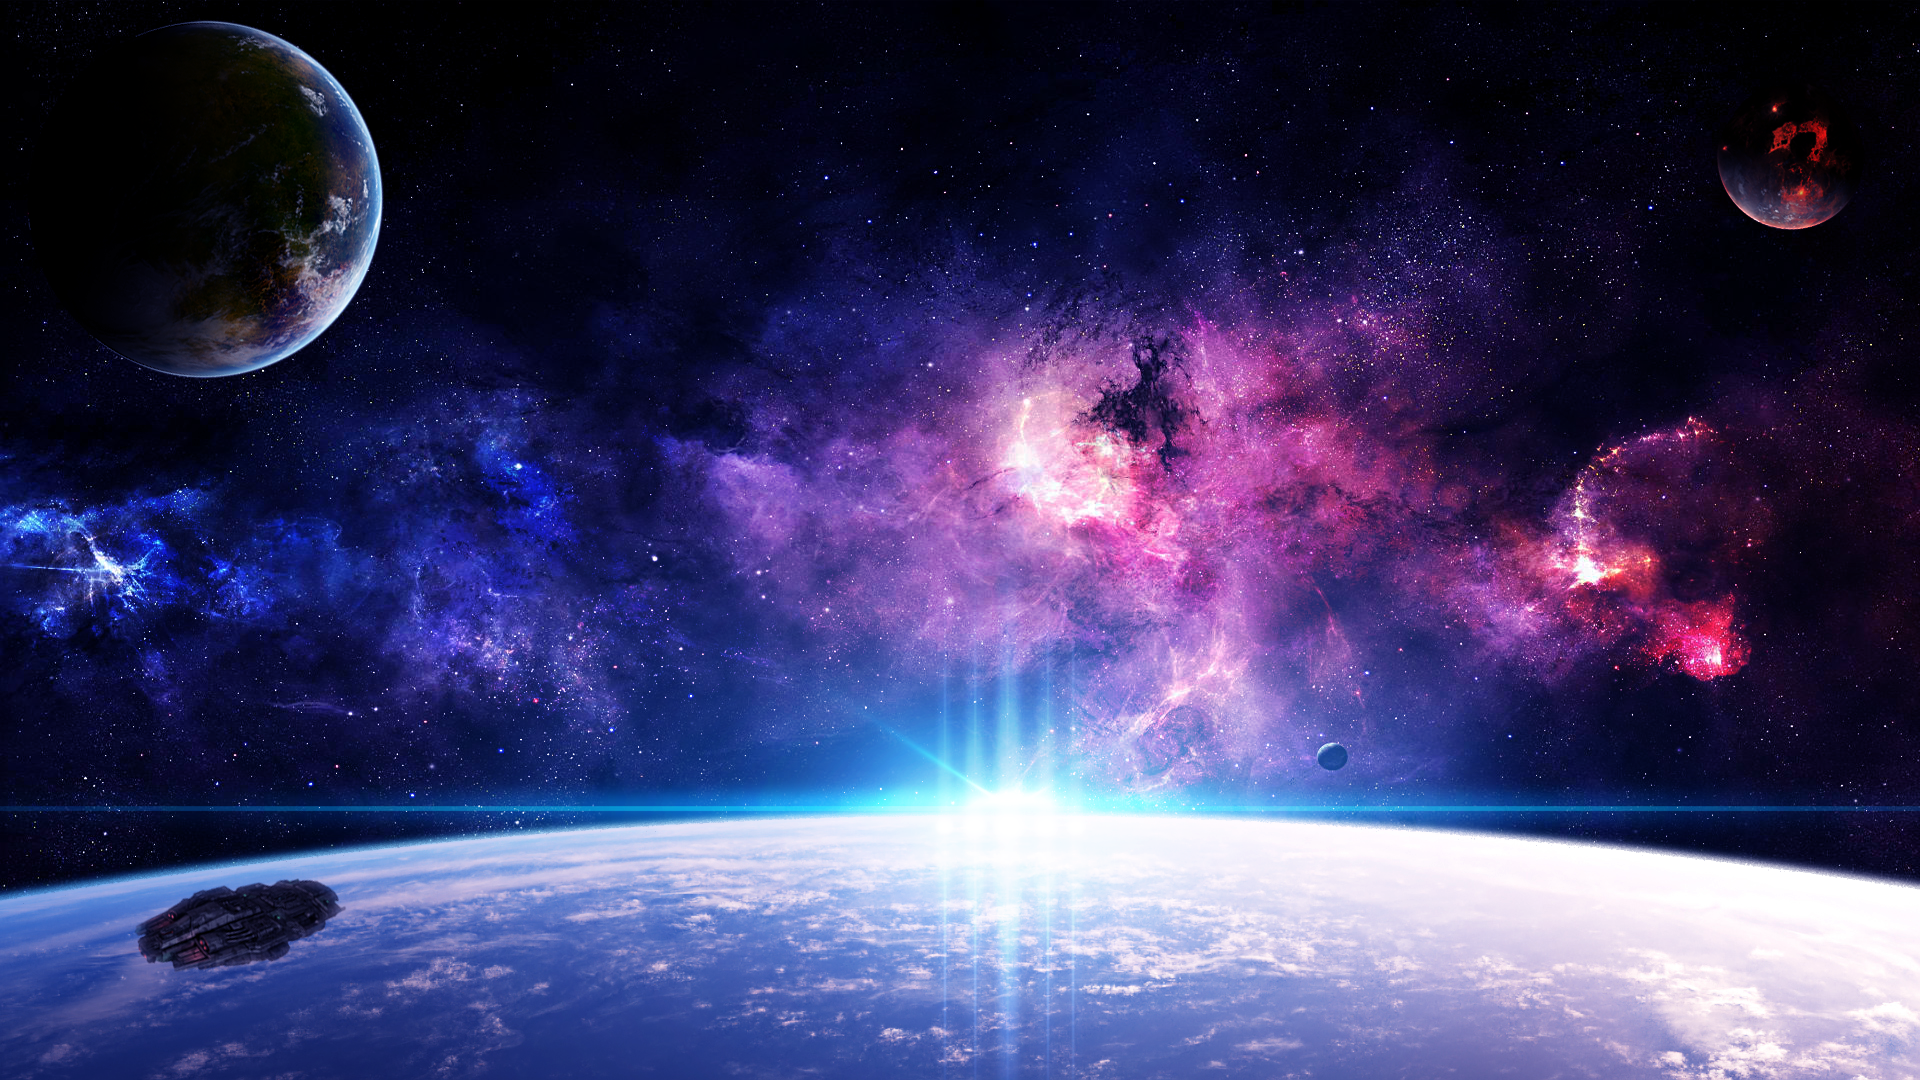 Space Hd Png Transparent Space Hdpng Images Pluspng